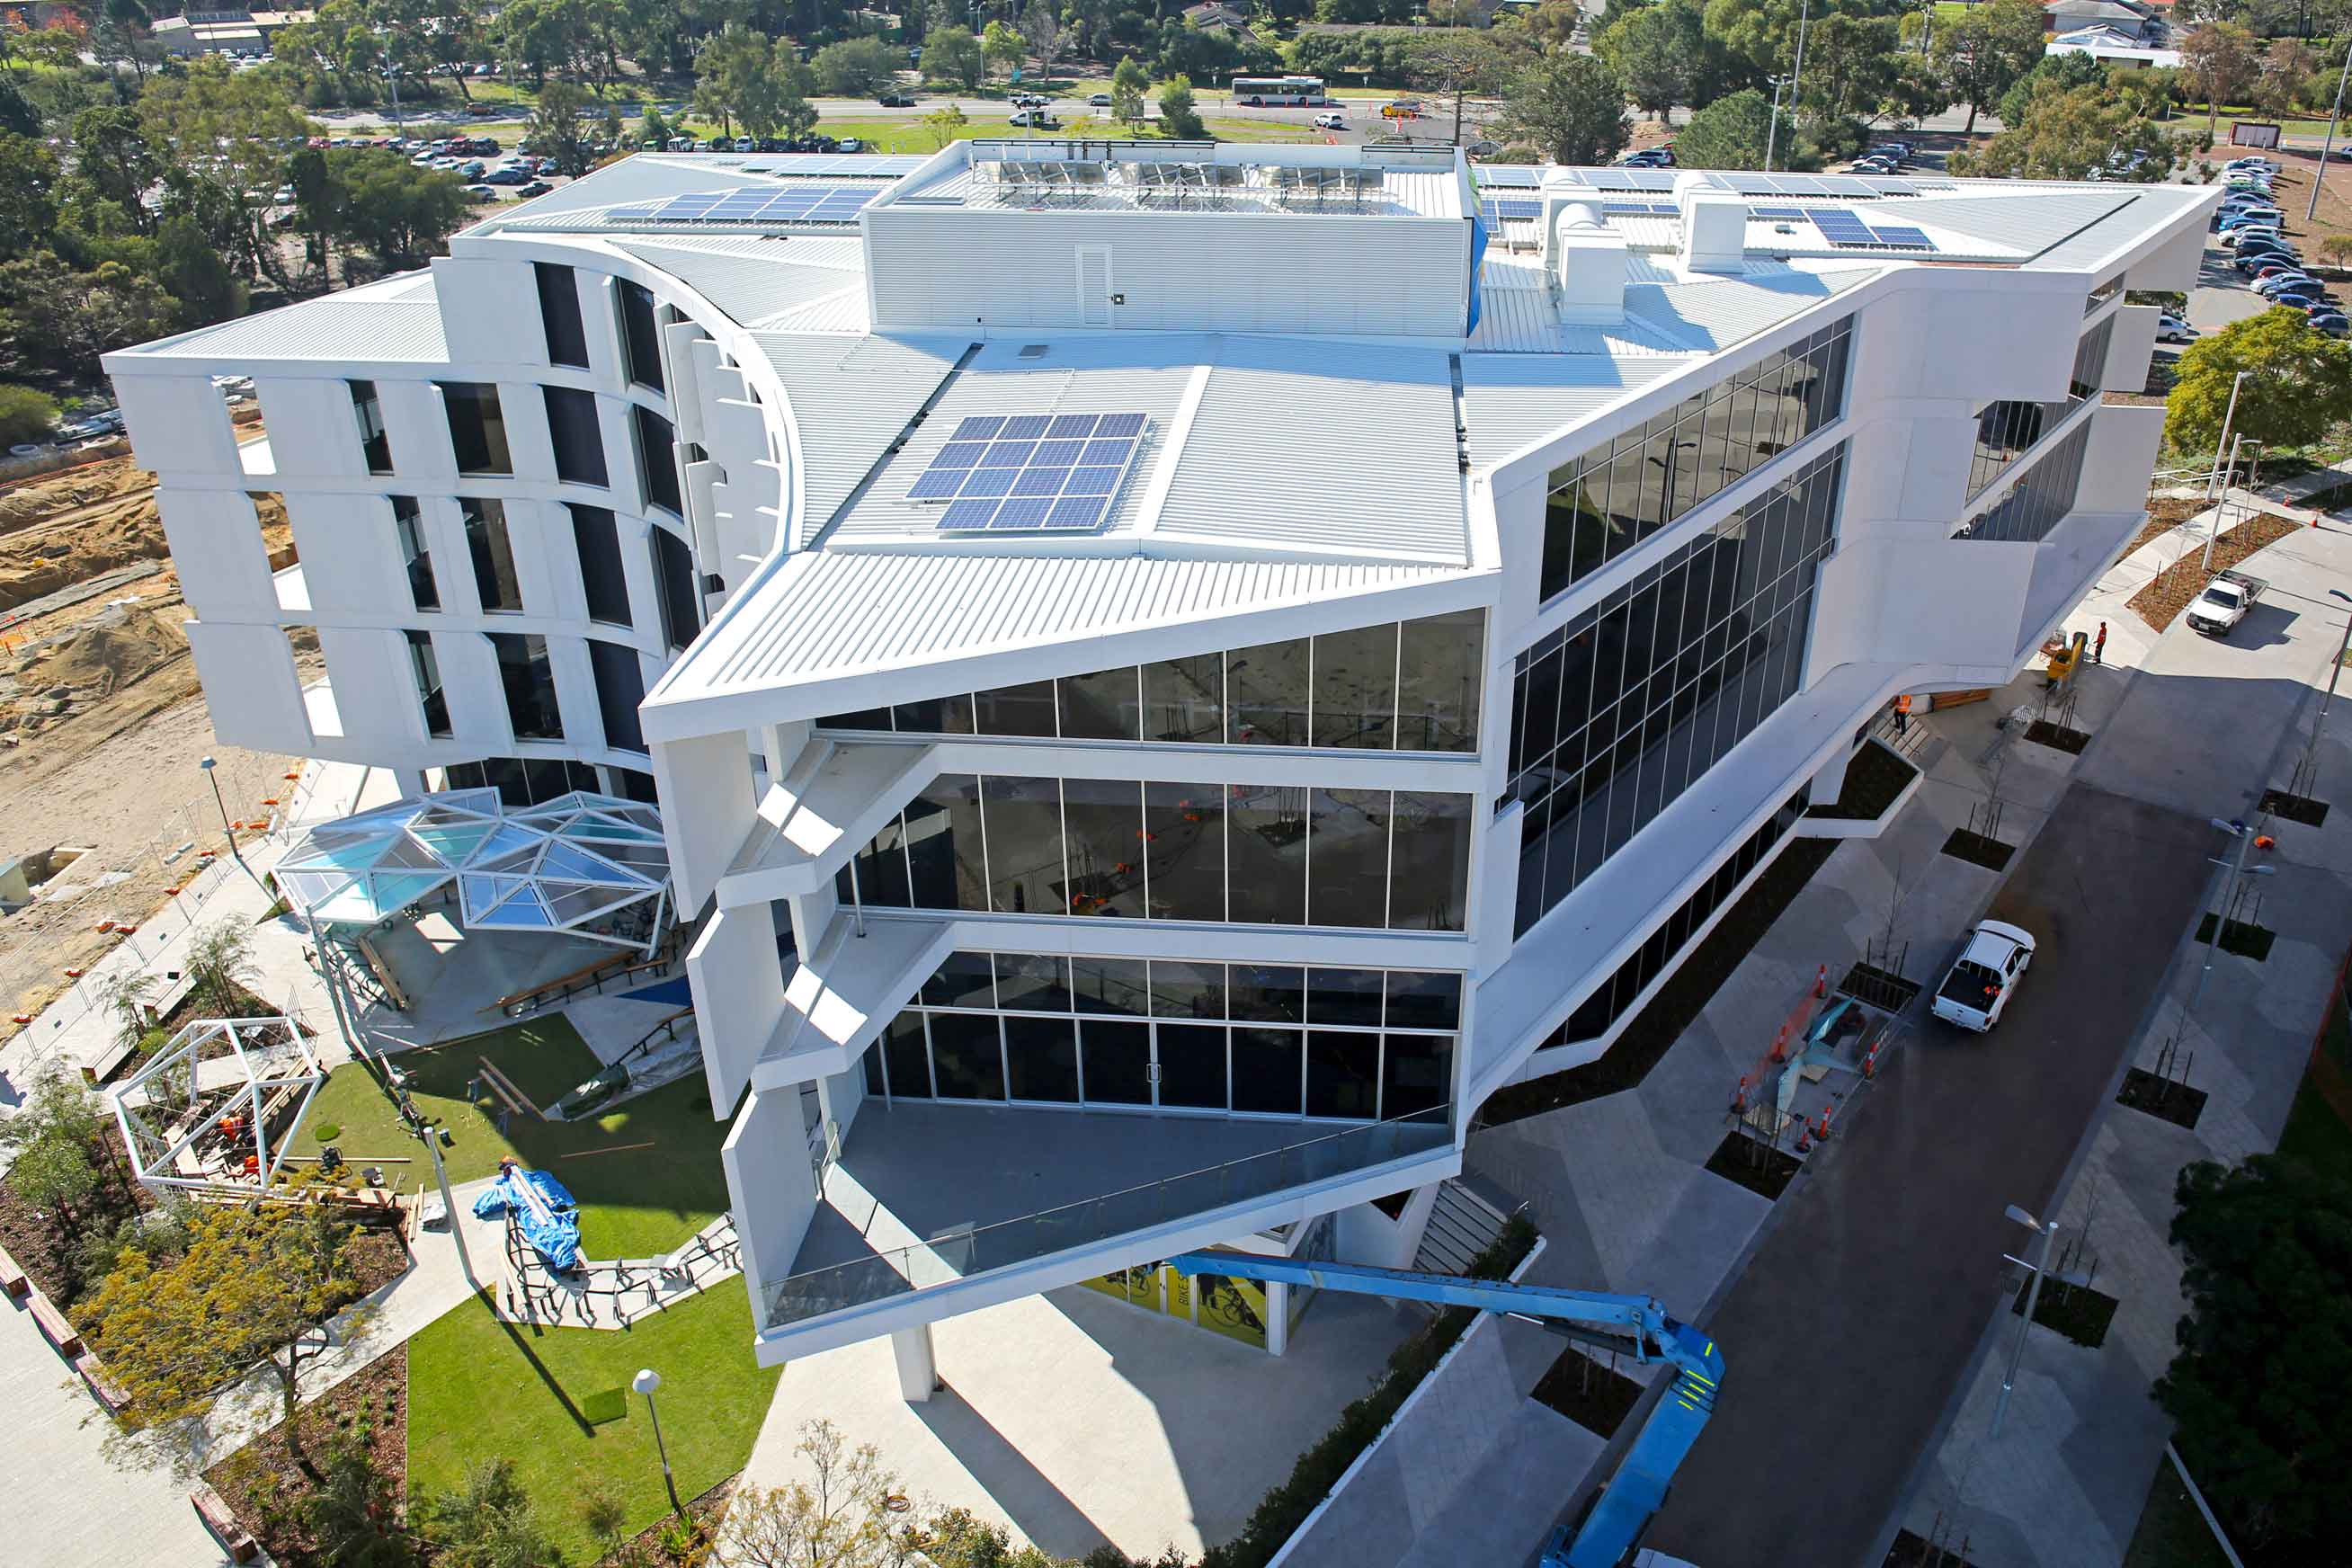 Curtin University Medical School : Image 4